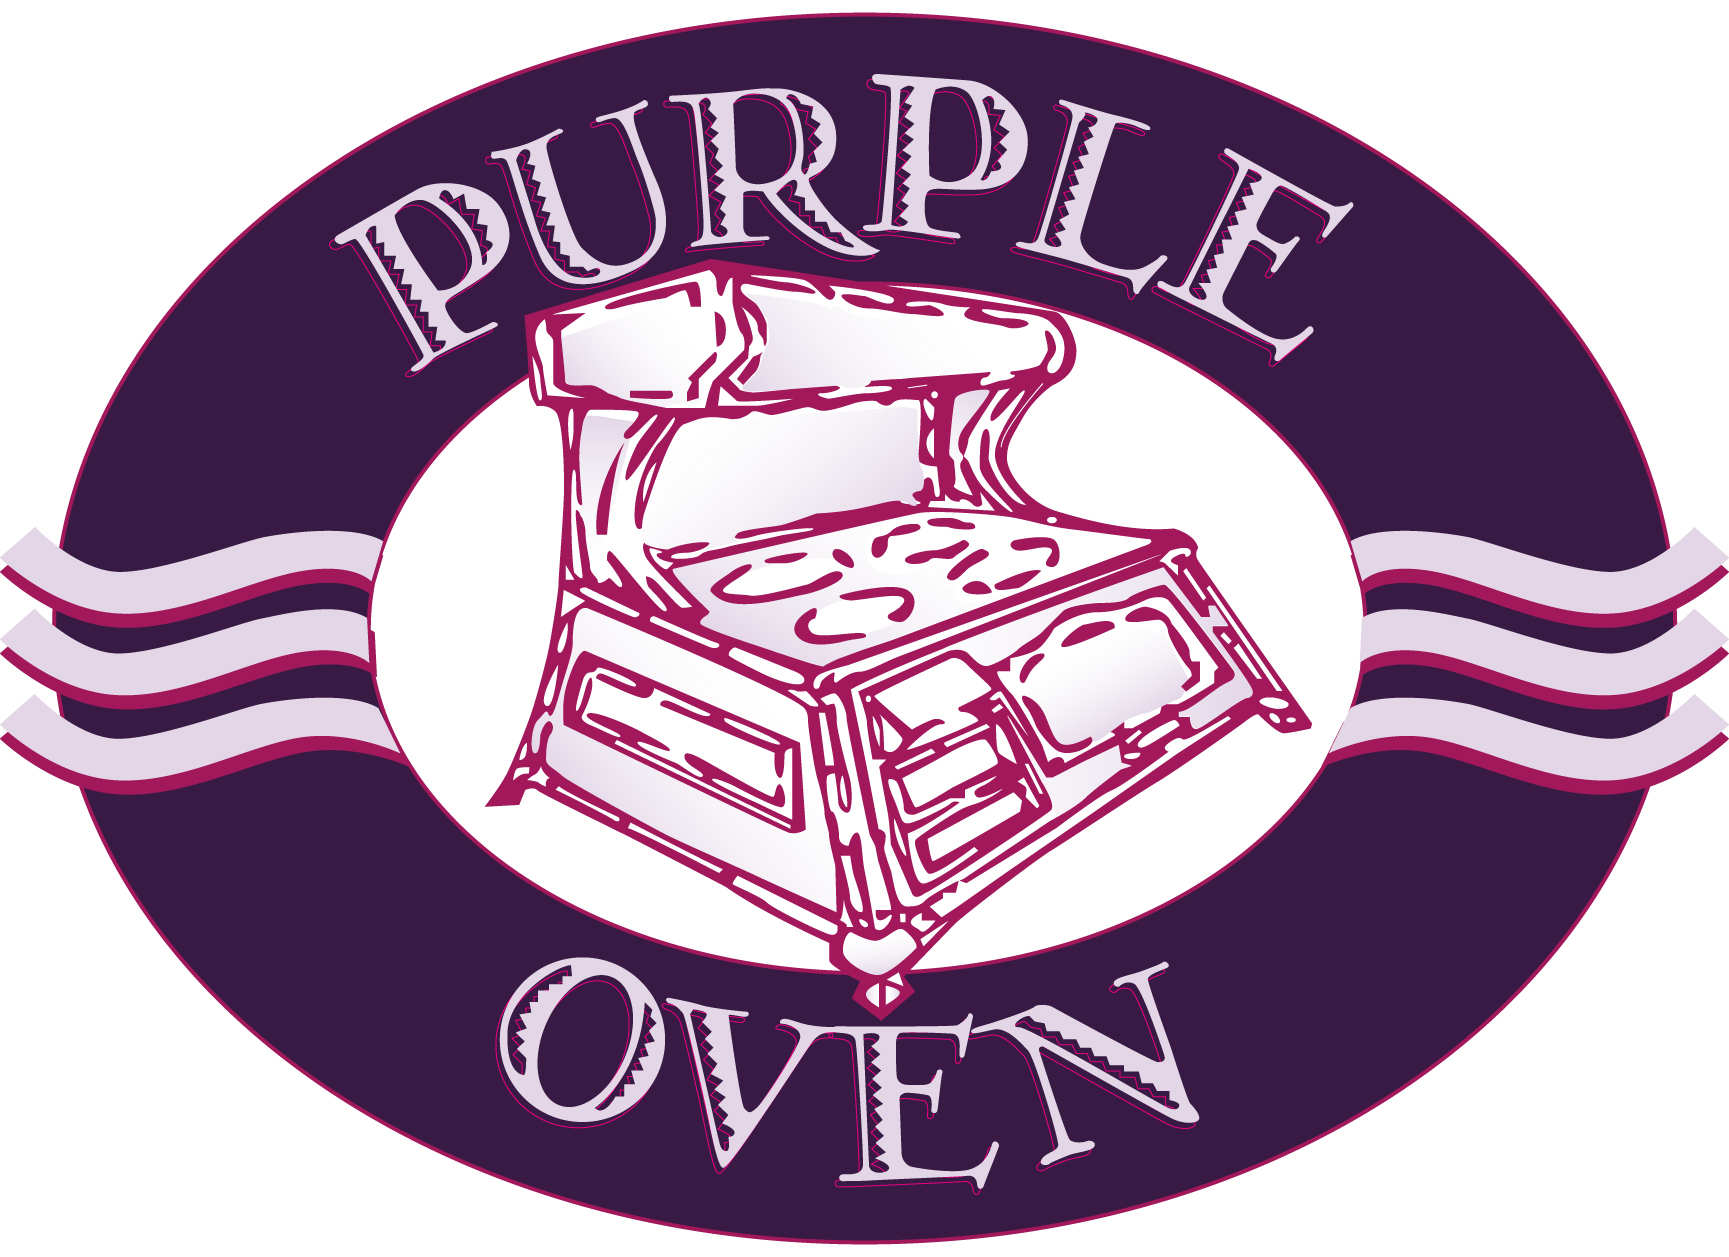 The Purple Oven Corporation